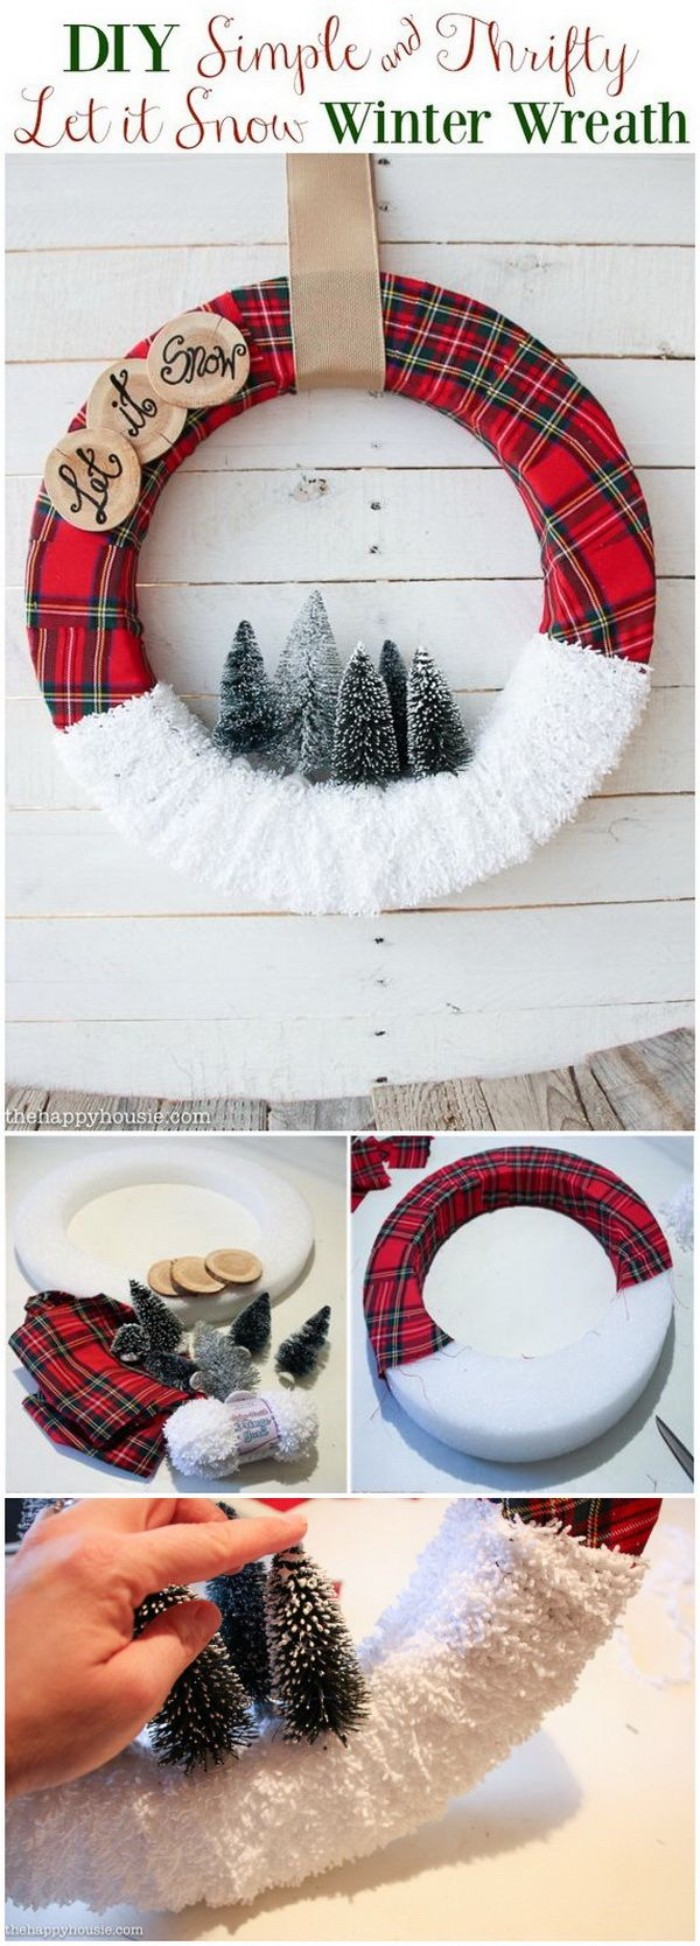 photo tutorial showing how to make a christmas wreath, white styrofoam hoop, wrapped in red tartan fabric, and white gauze, and decorated with small, christmas tree figurines